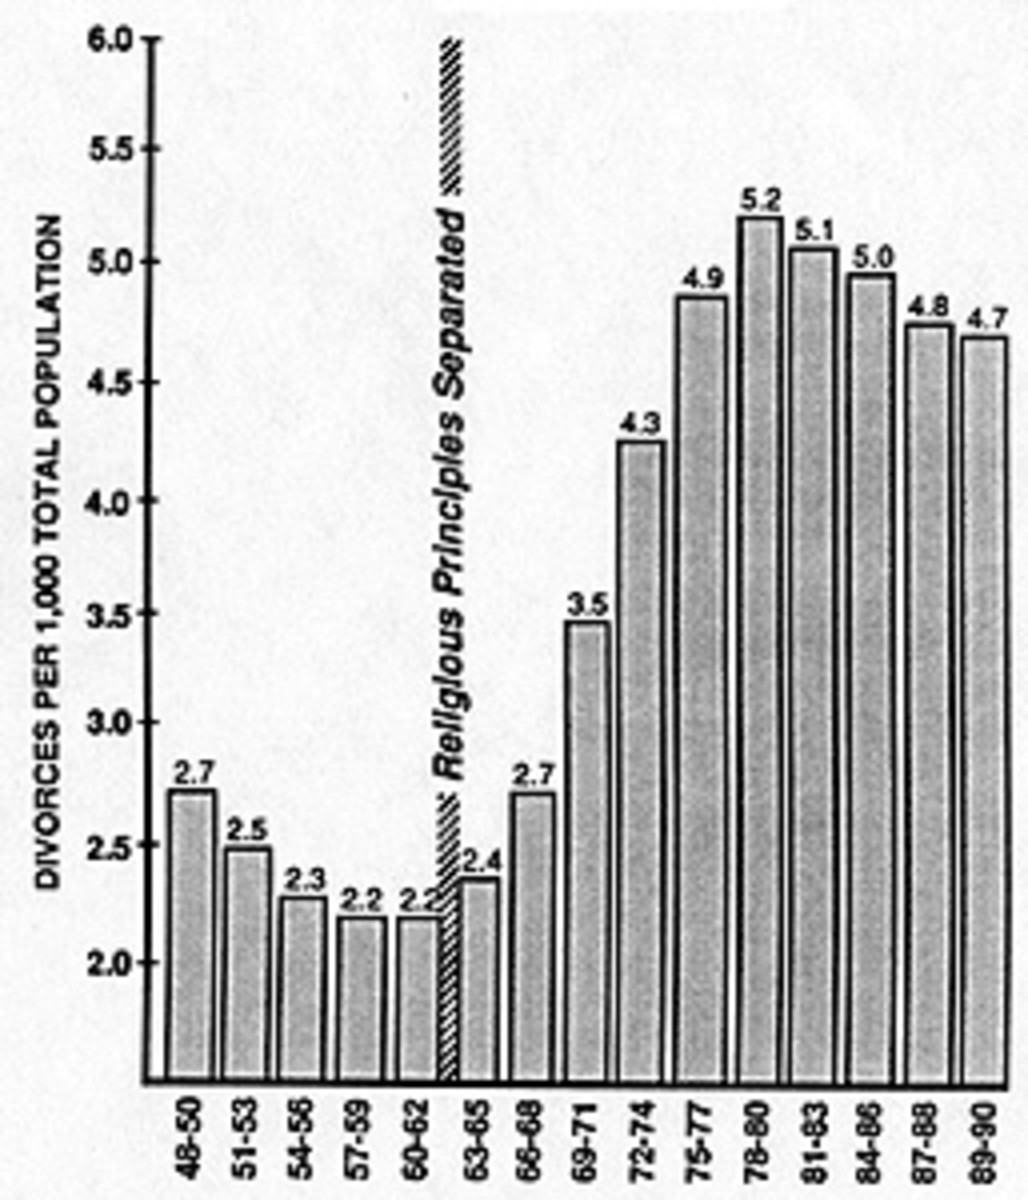 Number of Divorces before and after Engel v. Vitale (1963)